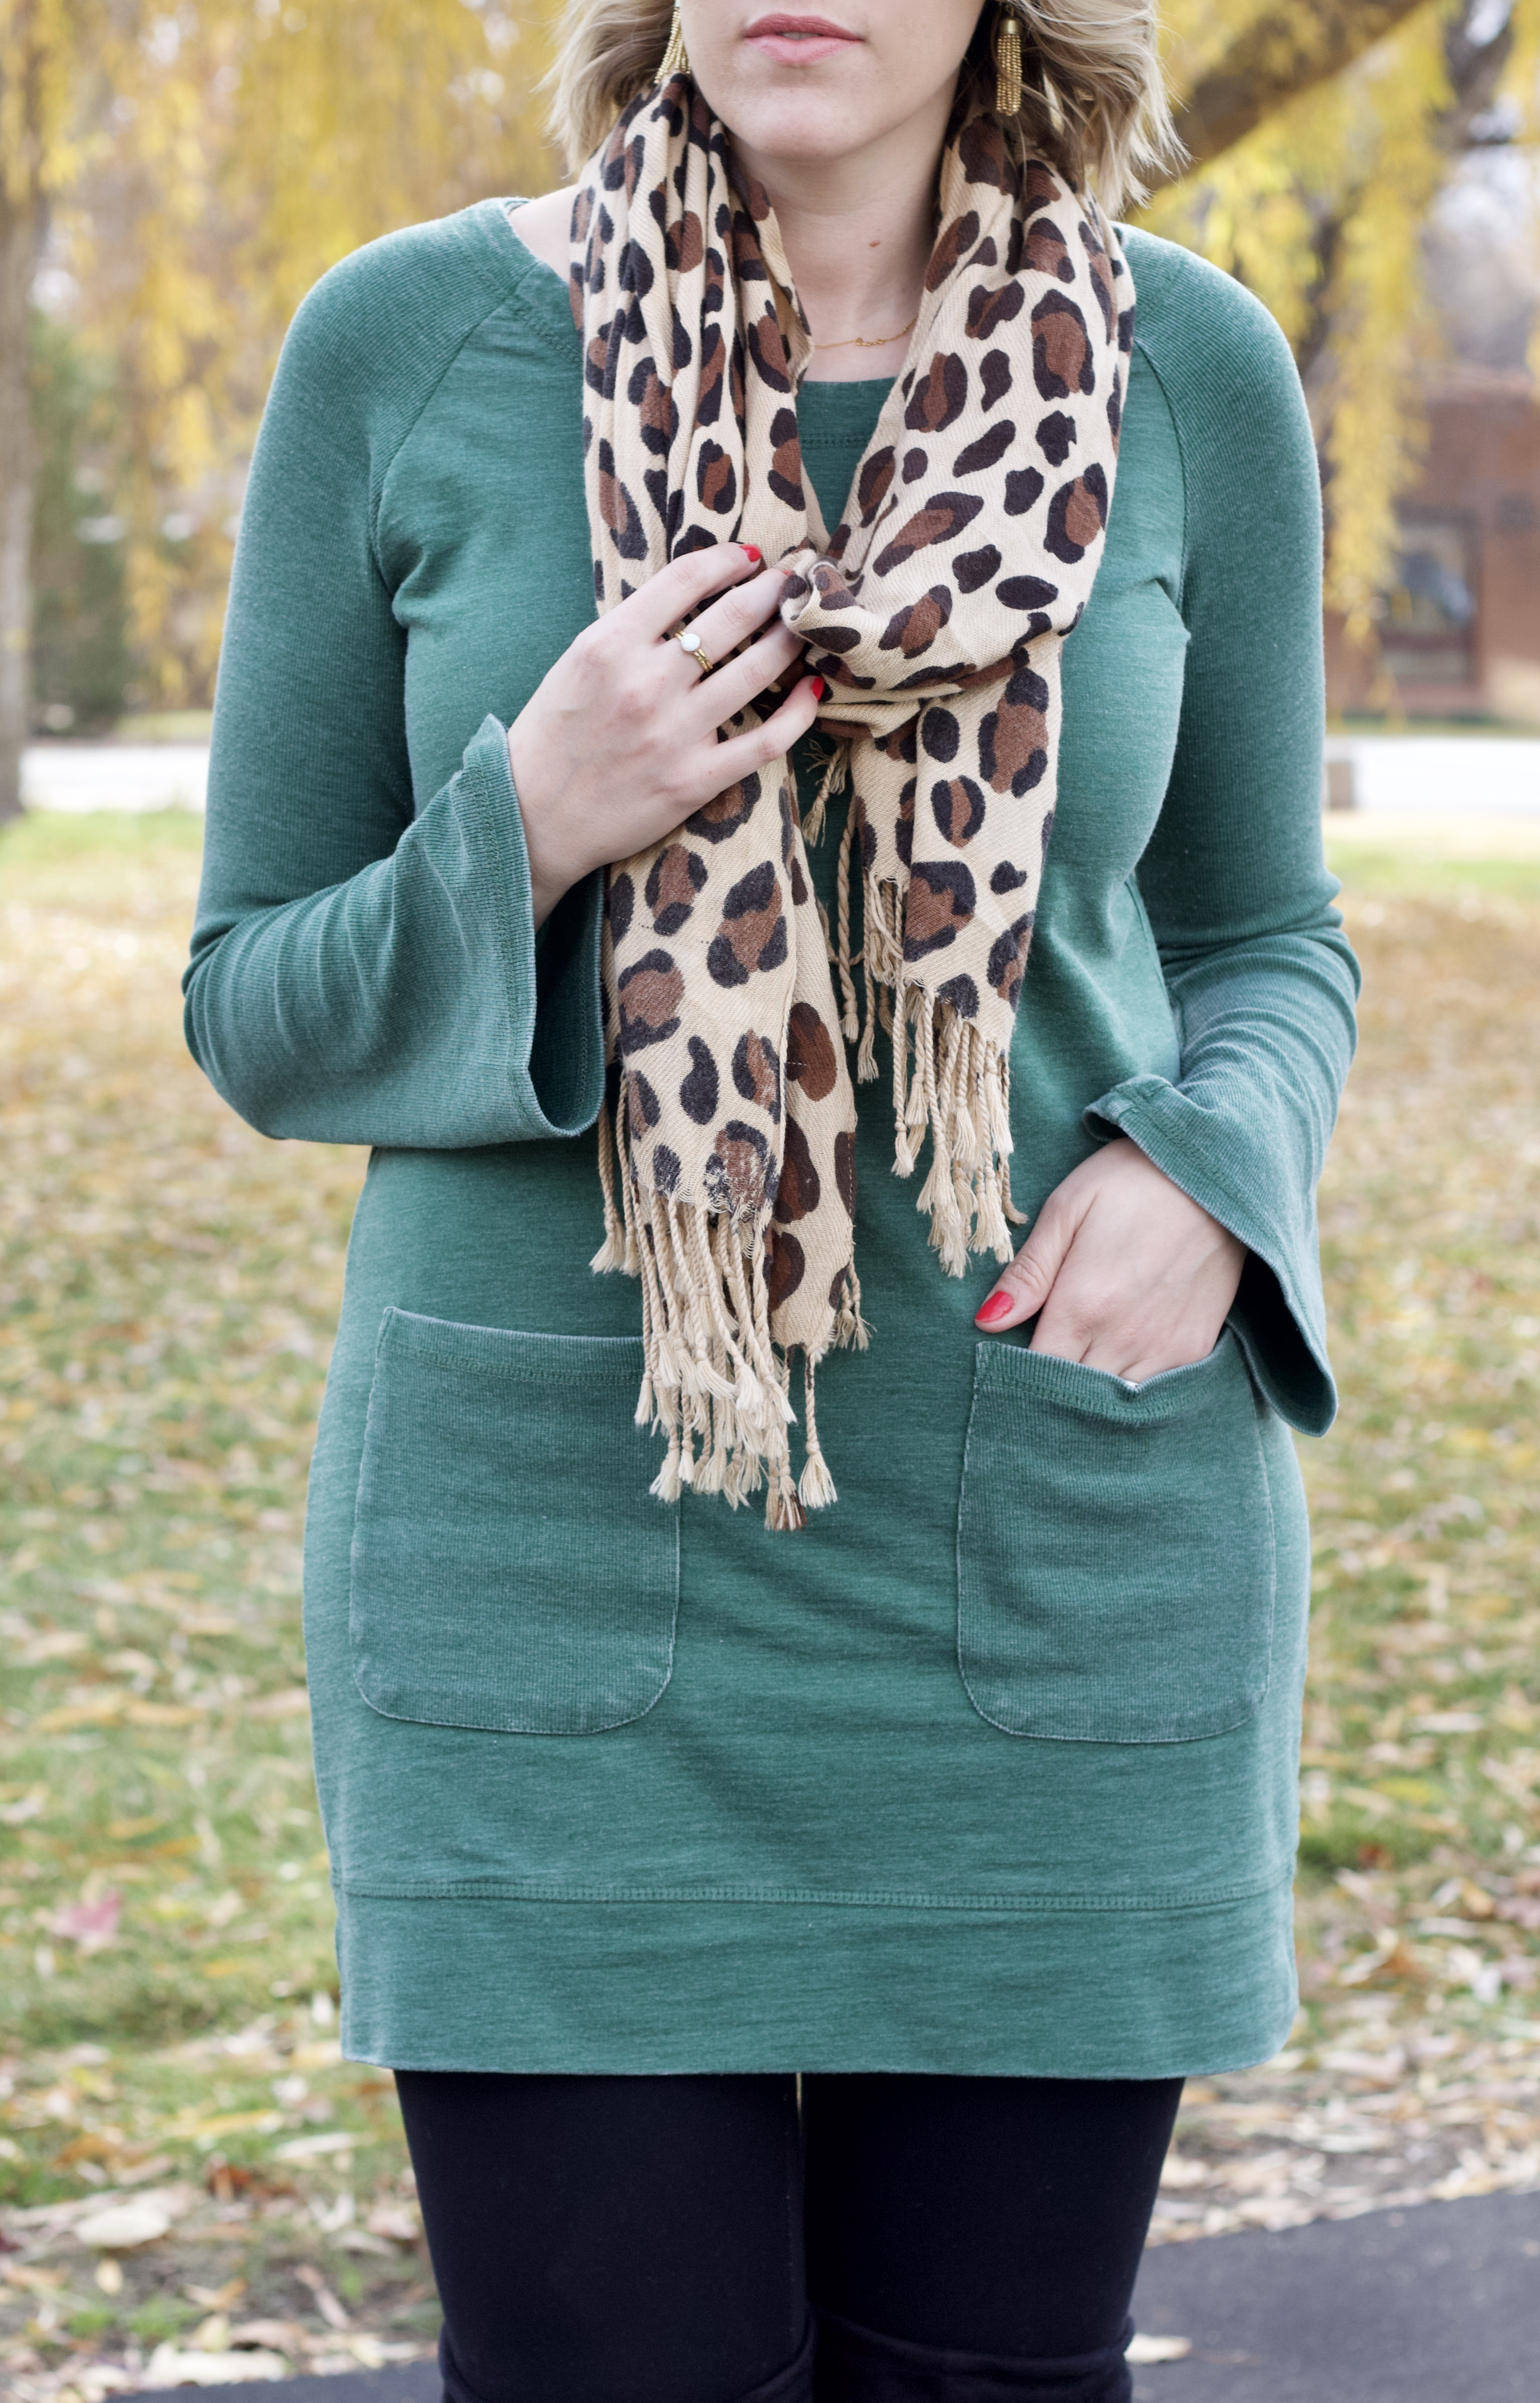 perfect holiday tunic outfit